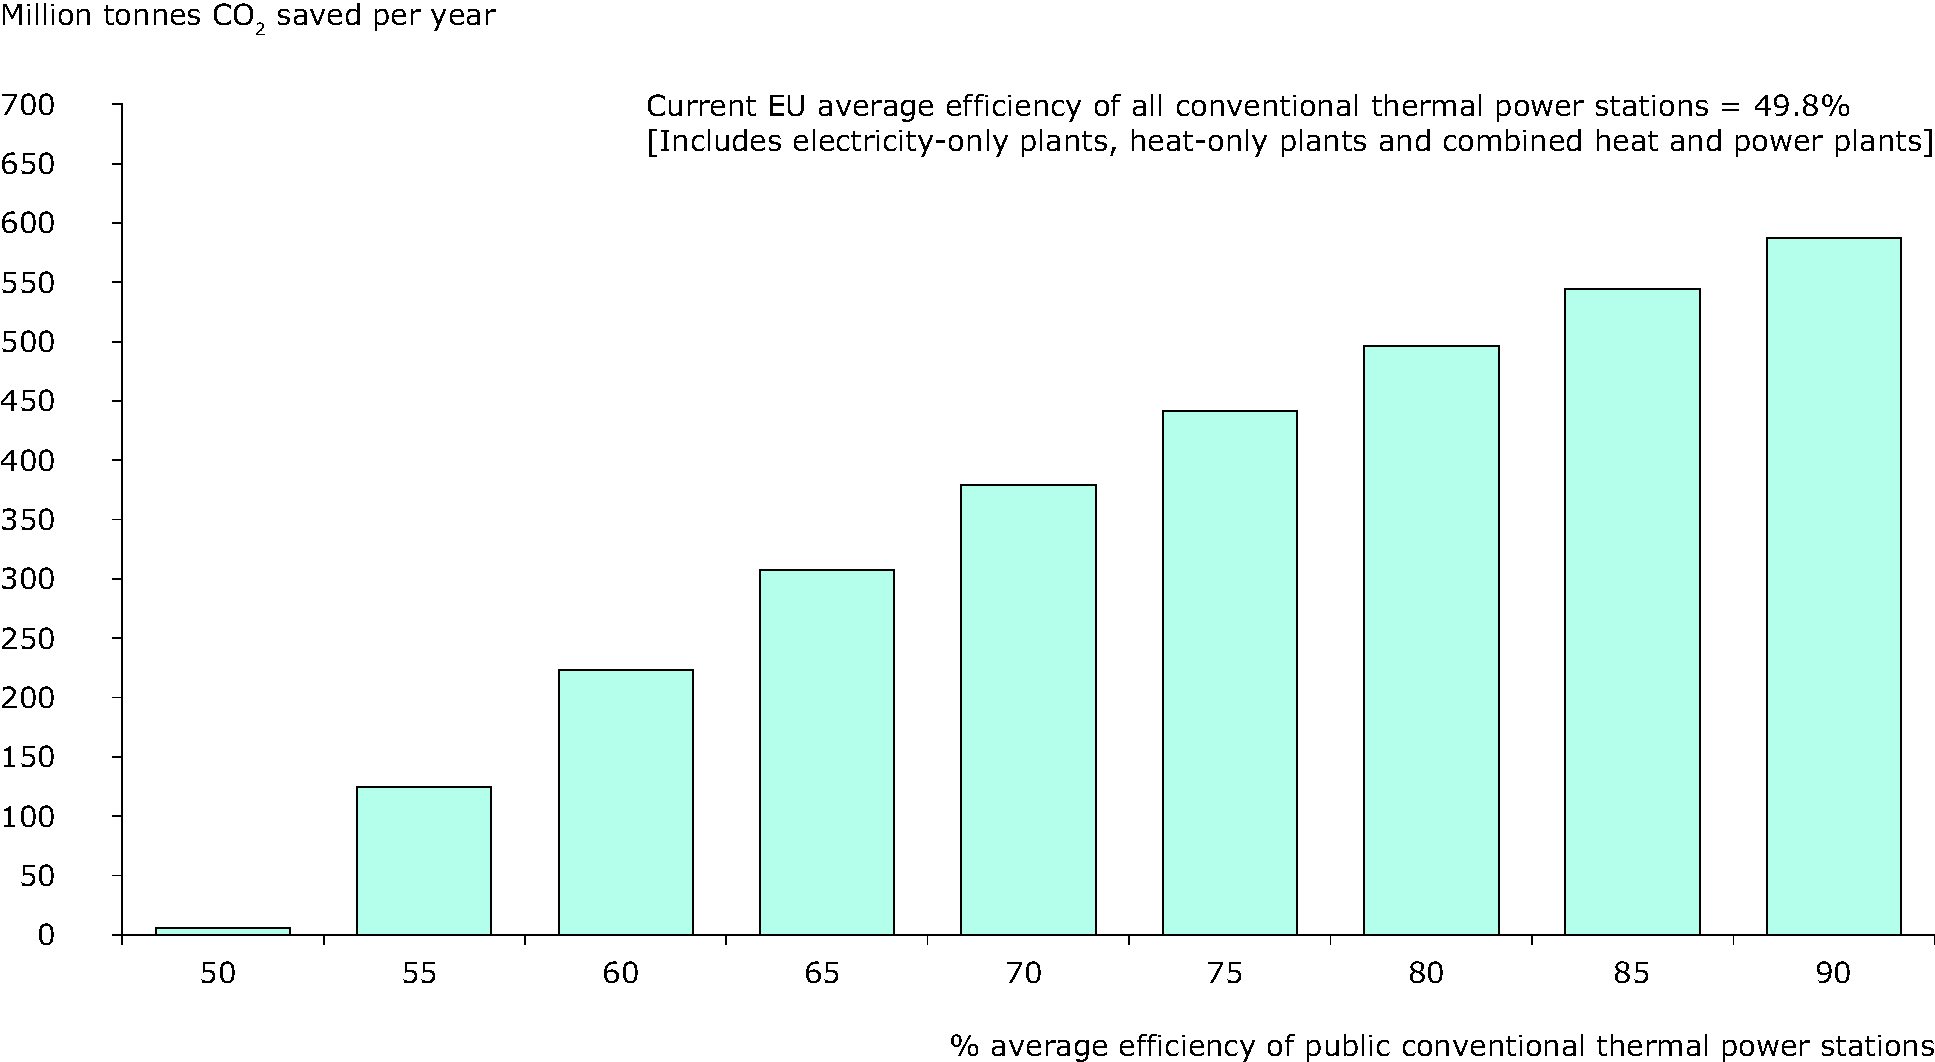 CO2 emission savings per year for EU-27 at different transformation efficiencies compared to current 2008 efficiency